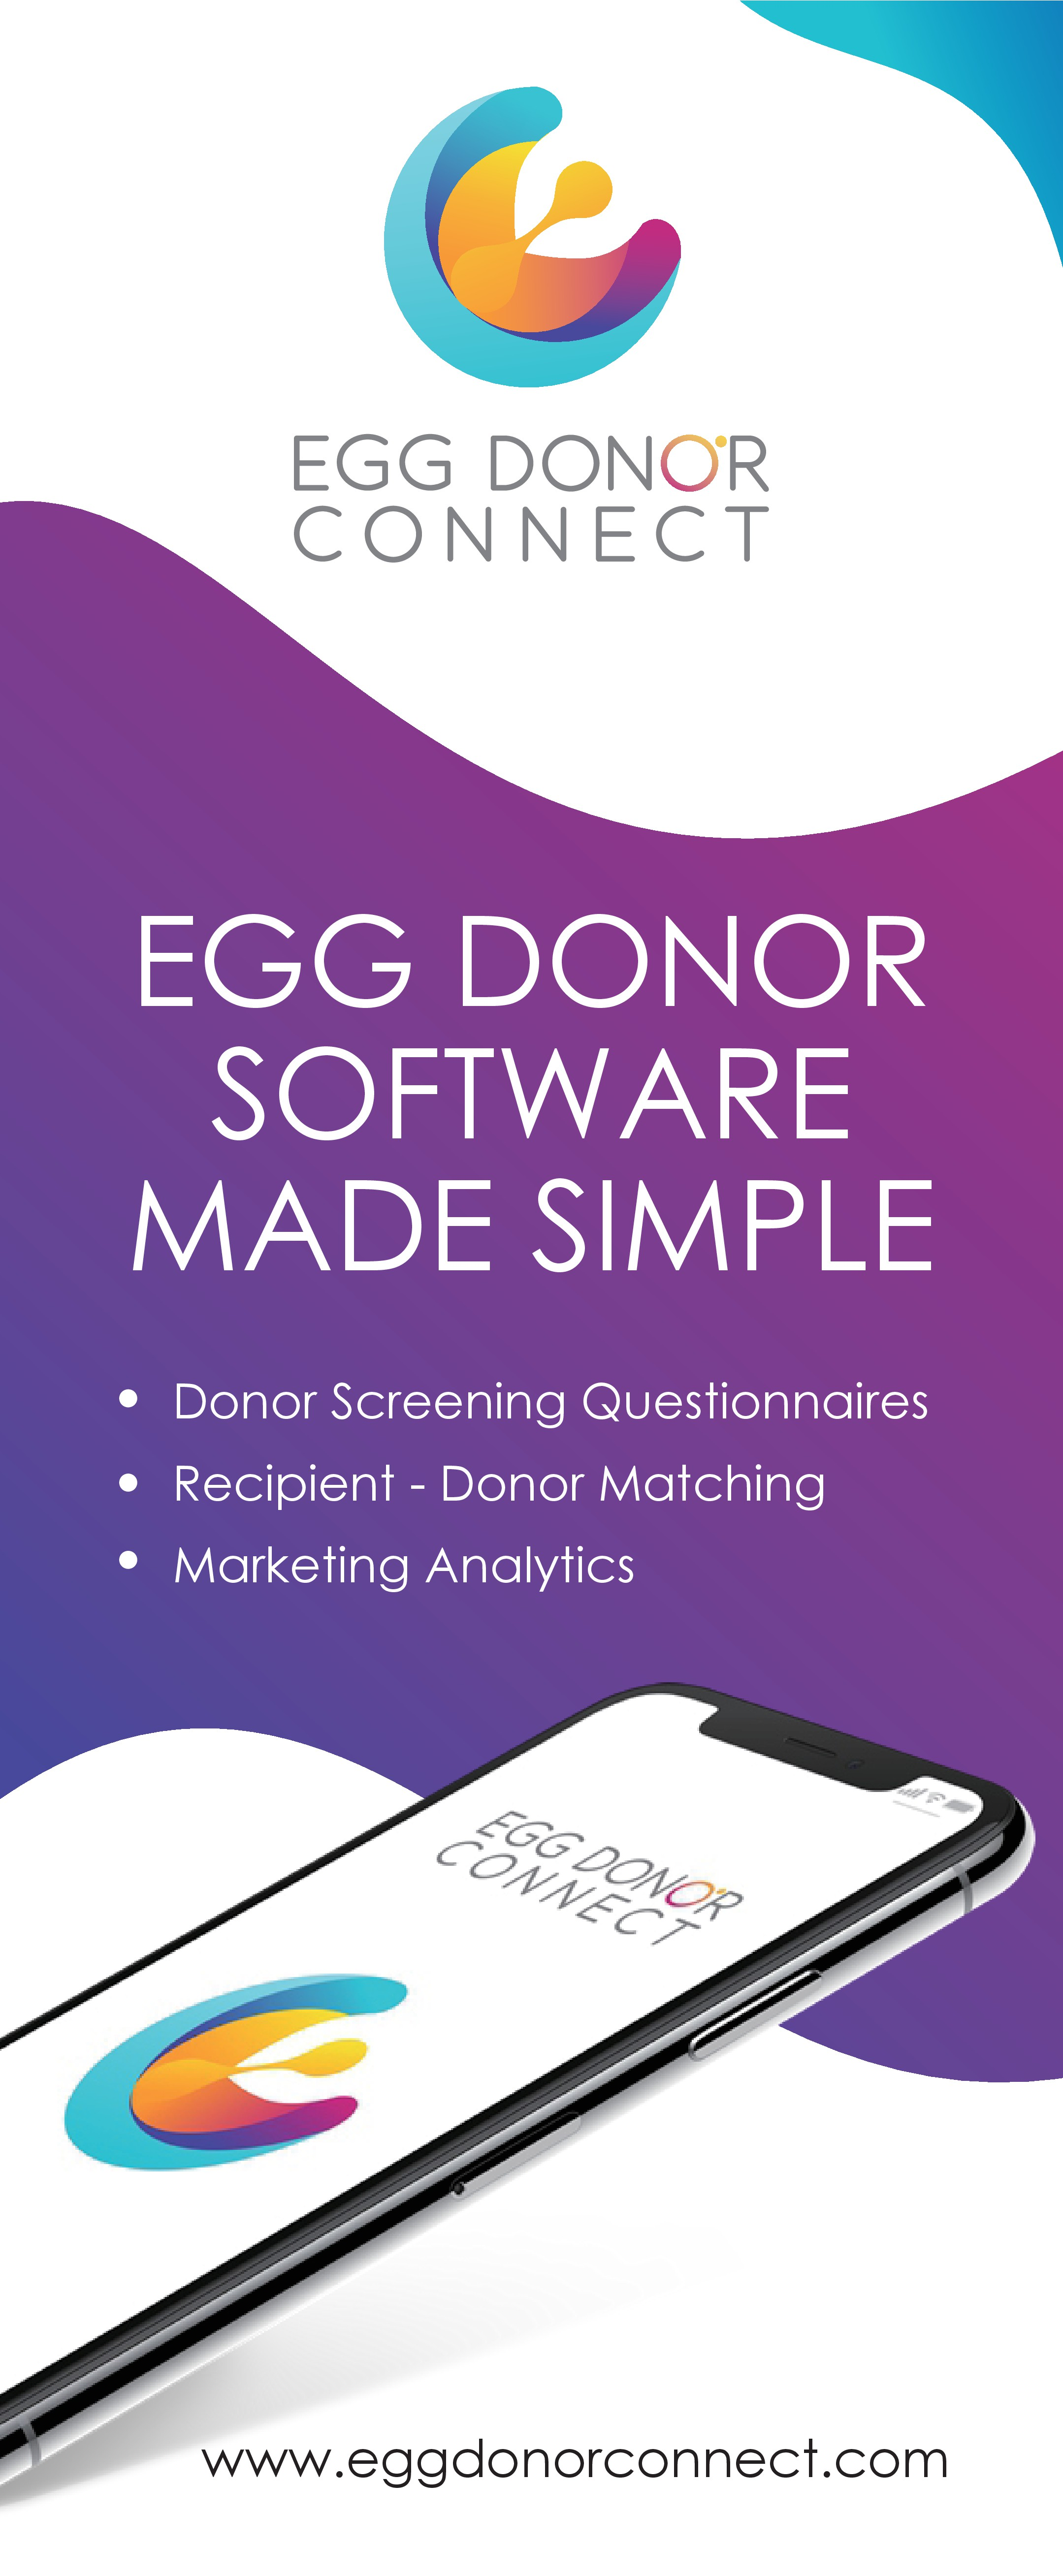 Our healthcare software startup needs your creativity for our first trade show booth!